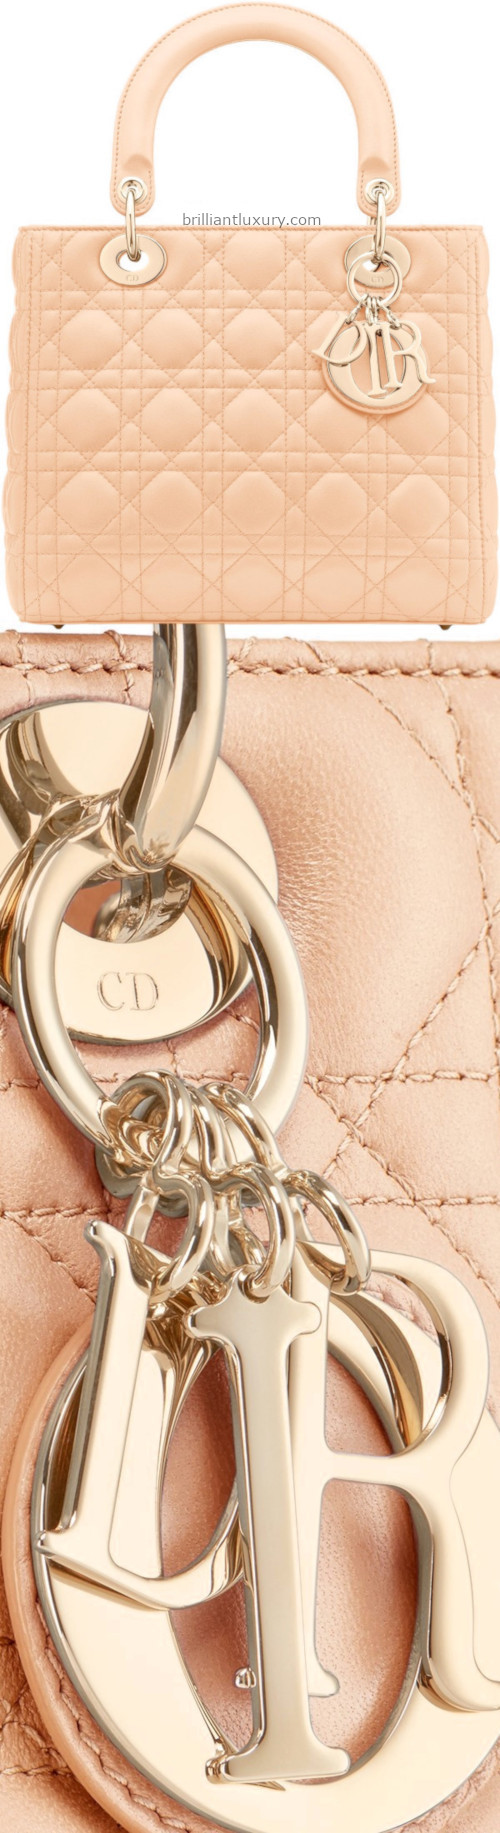 Skin Colored Dior Bag